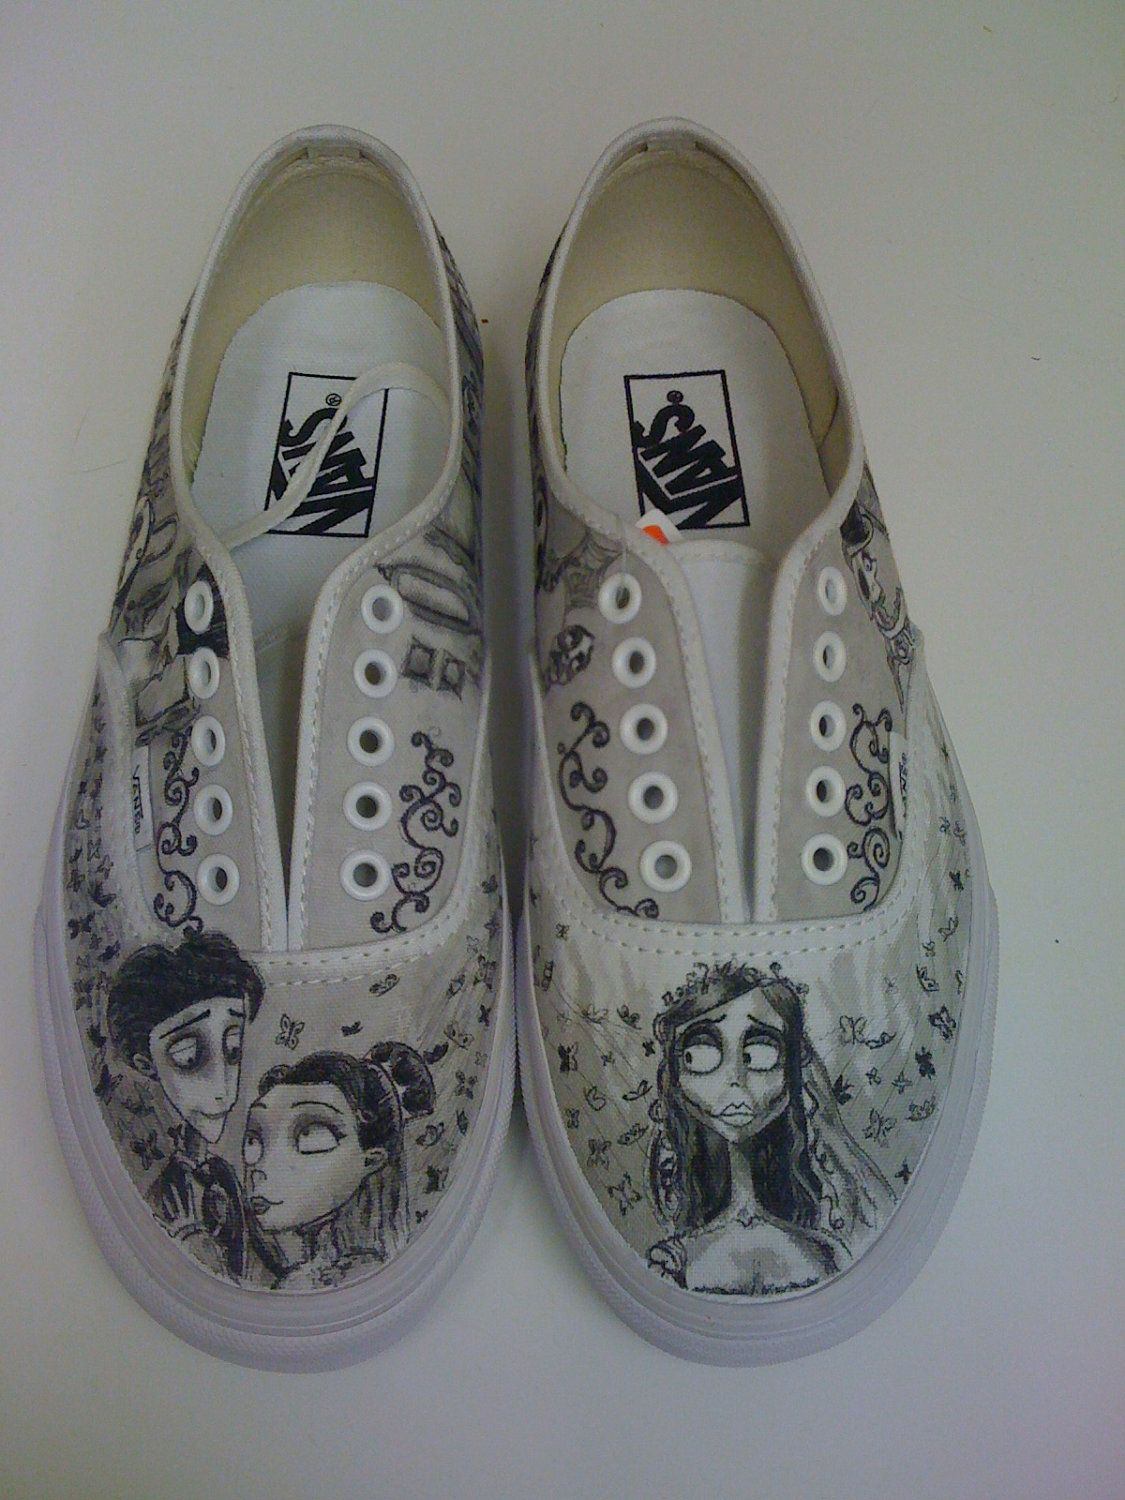 7e45a014c9a33 Corpse Bride Custom Made Shoes in 2019 | ❤s | Custom made shoes ...